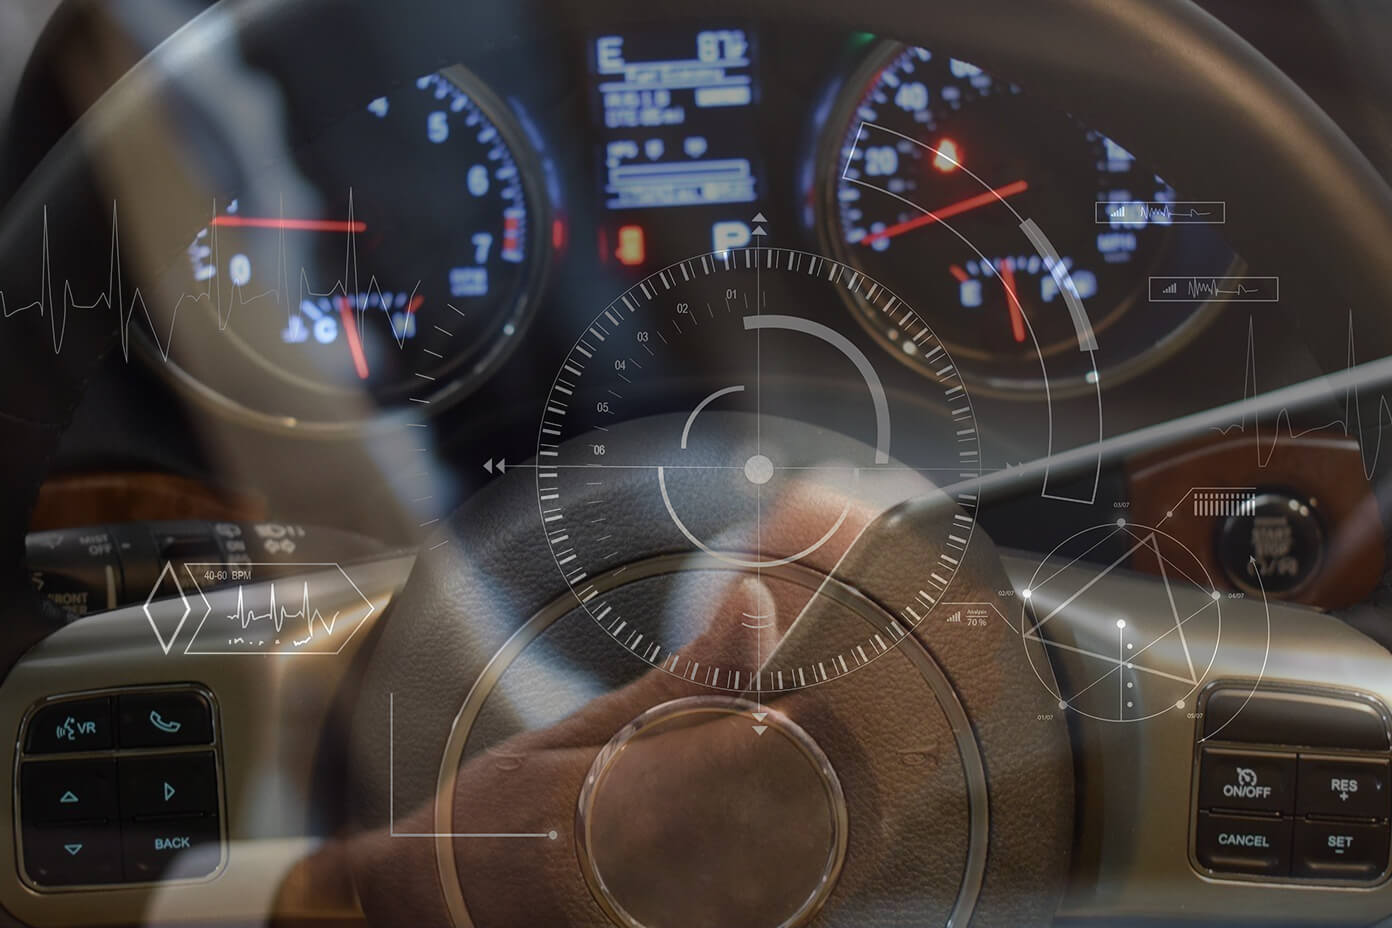 SID Vehicle Displays Conference to Demonstrate On-cell LCD or OLED Sensors